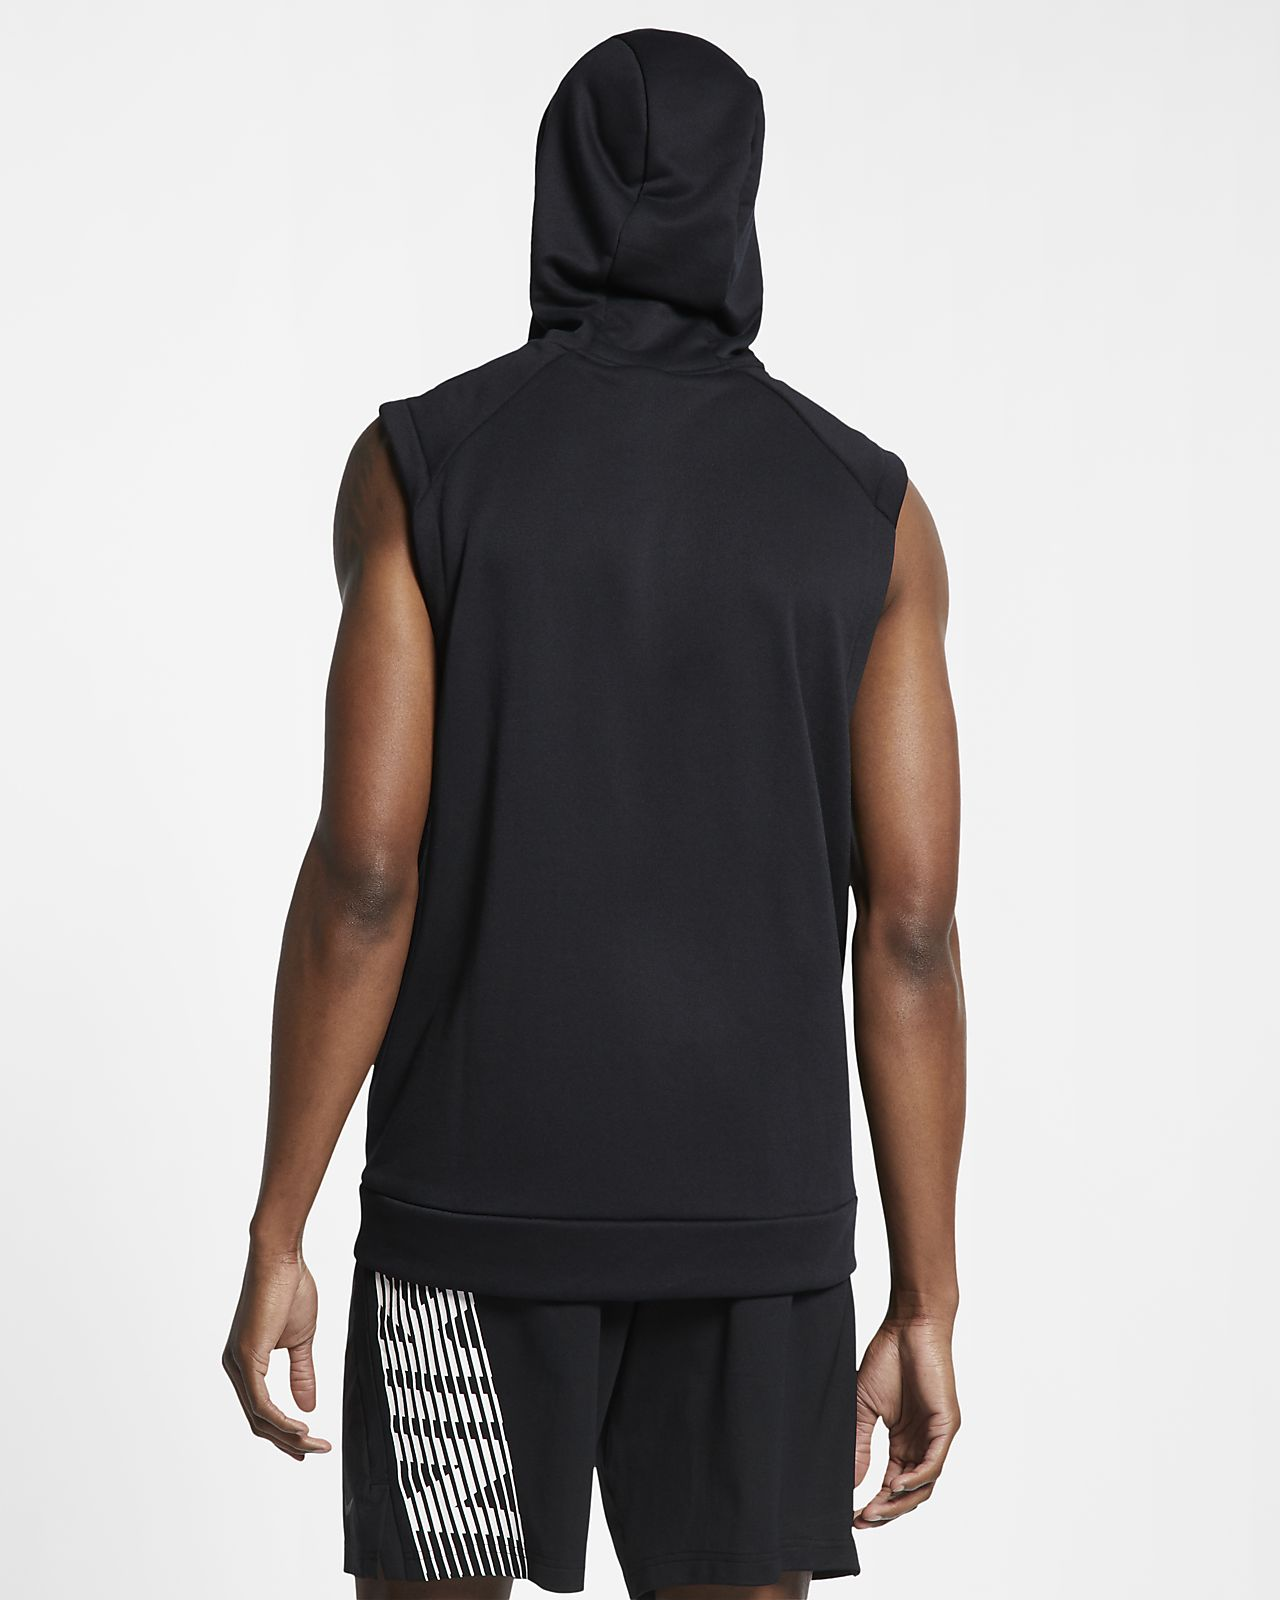 865f95bb9a12 Nike Dri-FIT Men s Sleeveless Training Hoodie. Nike.com GB